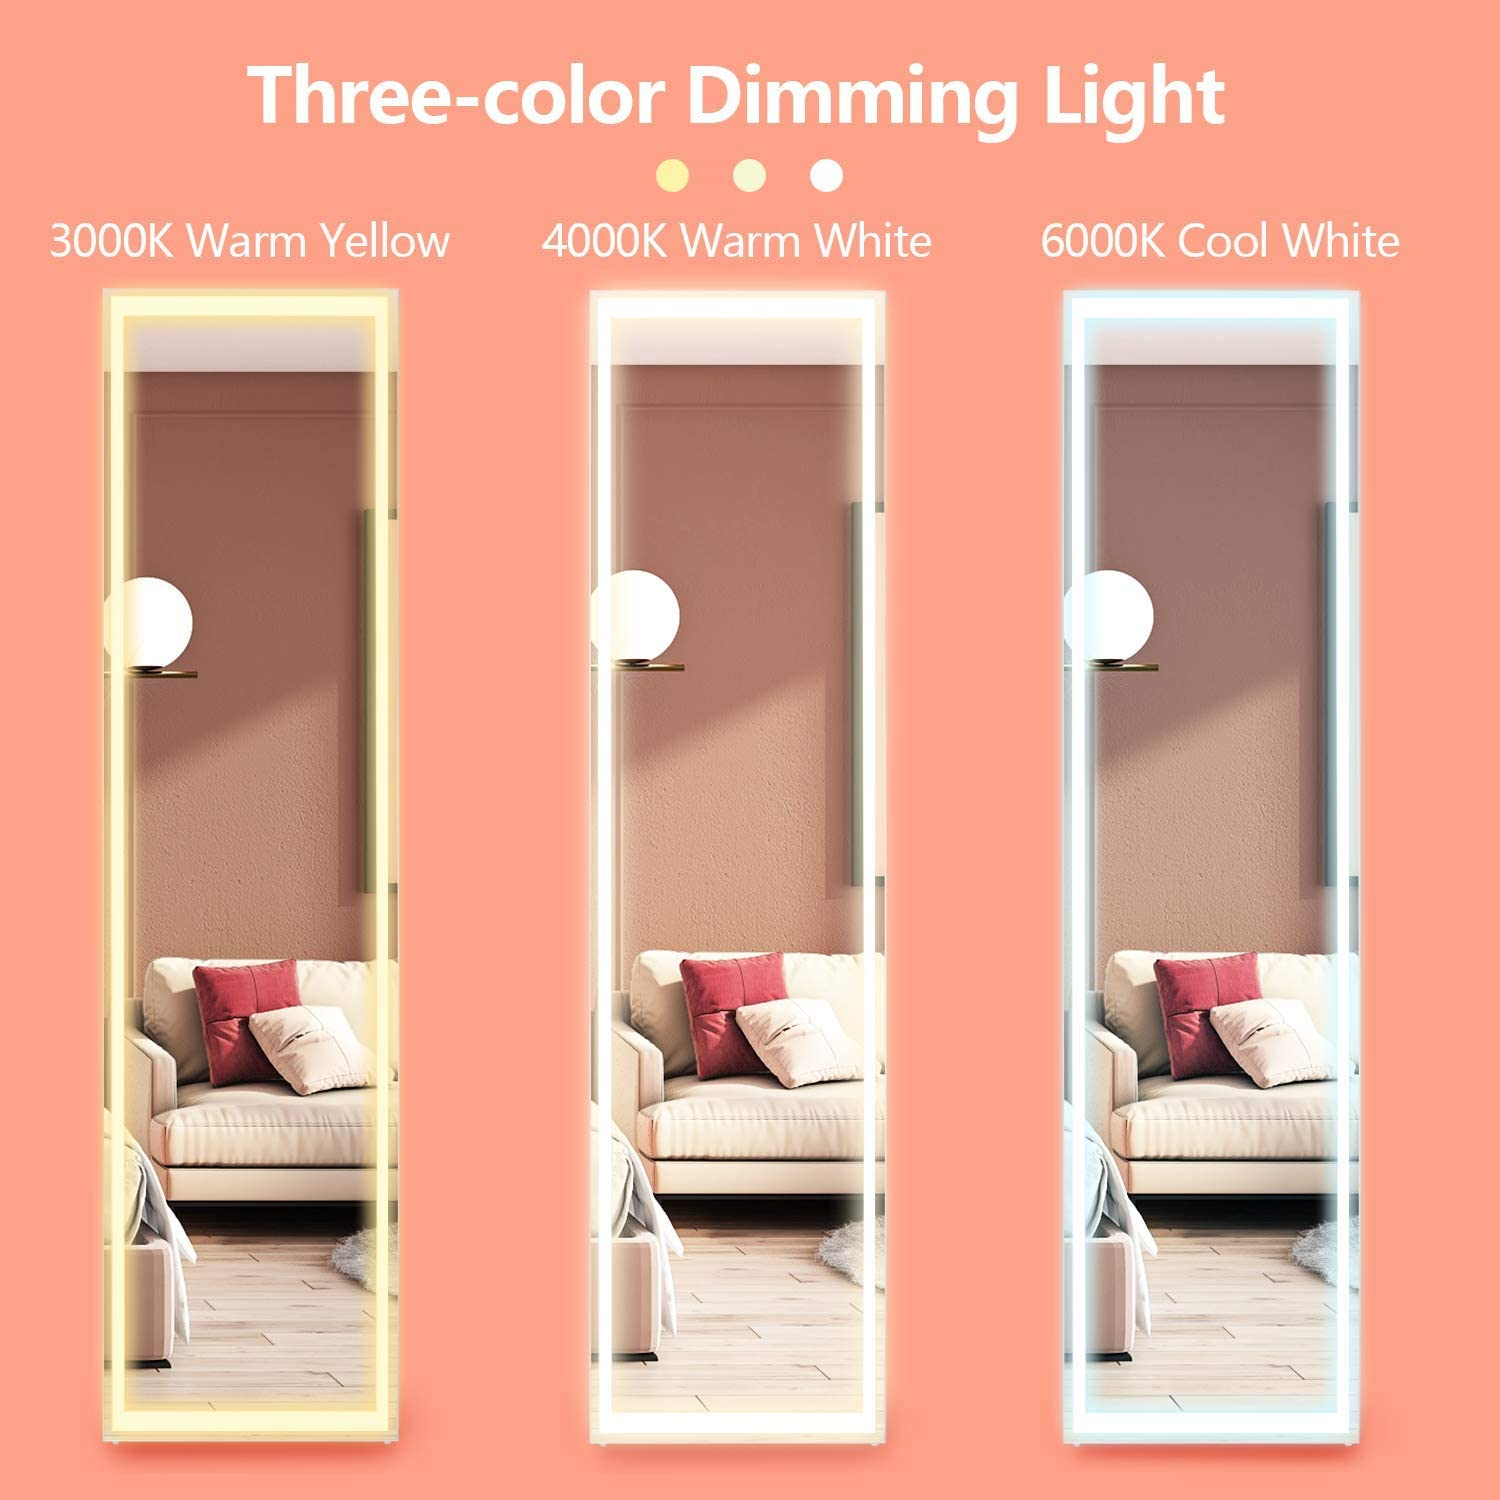 Large Hanging Mirror LVSOMT 63x15 LED Full-Length Mirror Floor Mirror /& Wall Mirror Free Standing Mirror 3 Color Modes Lighted Makeup Vanity Mirror with Remote Control White Full Body Mirror